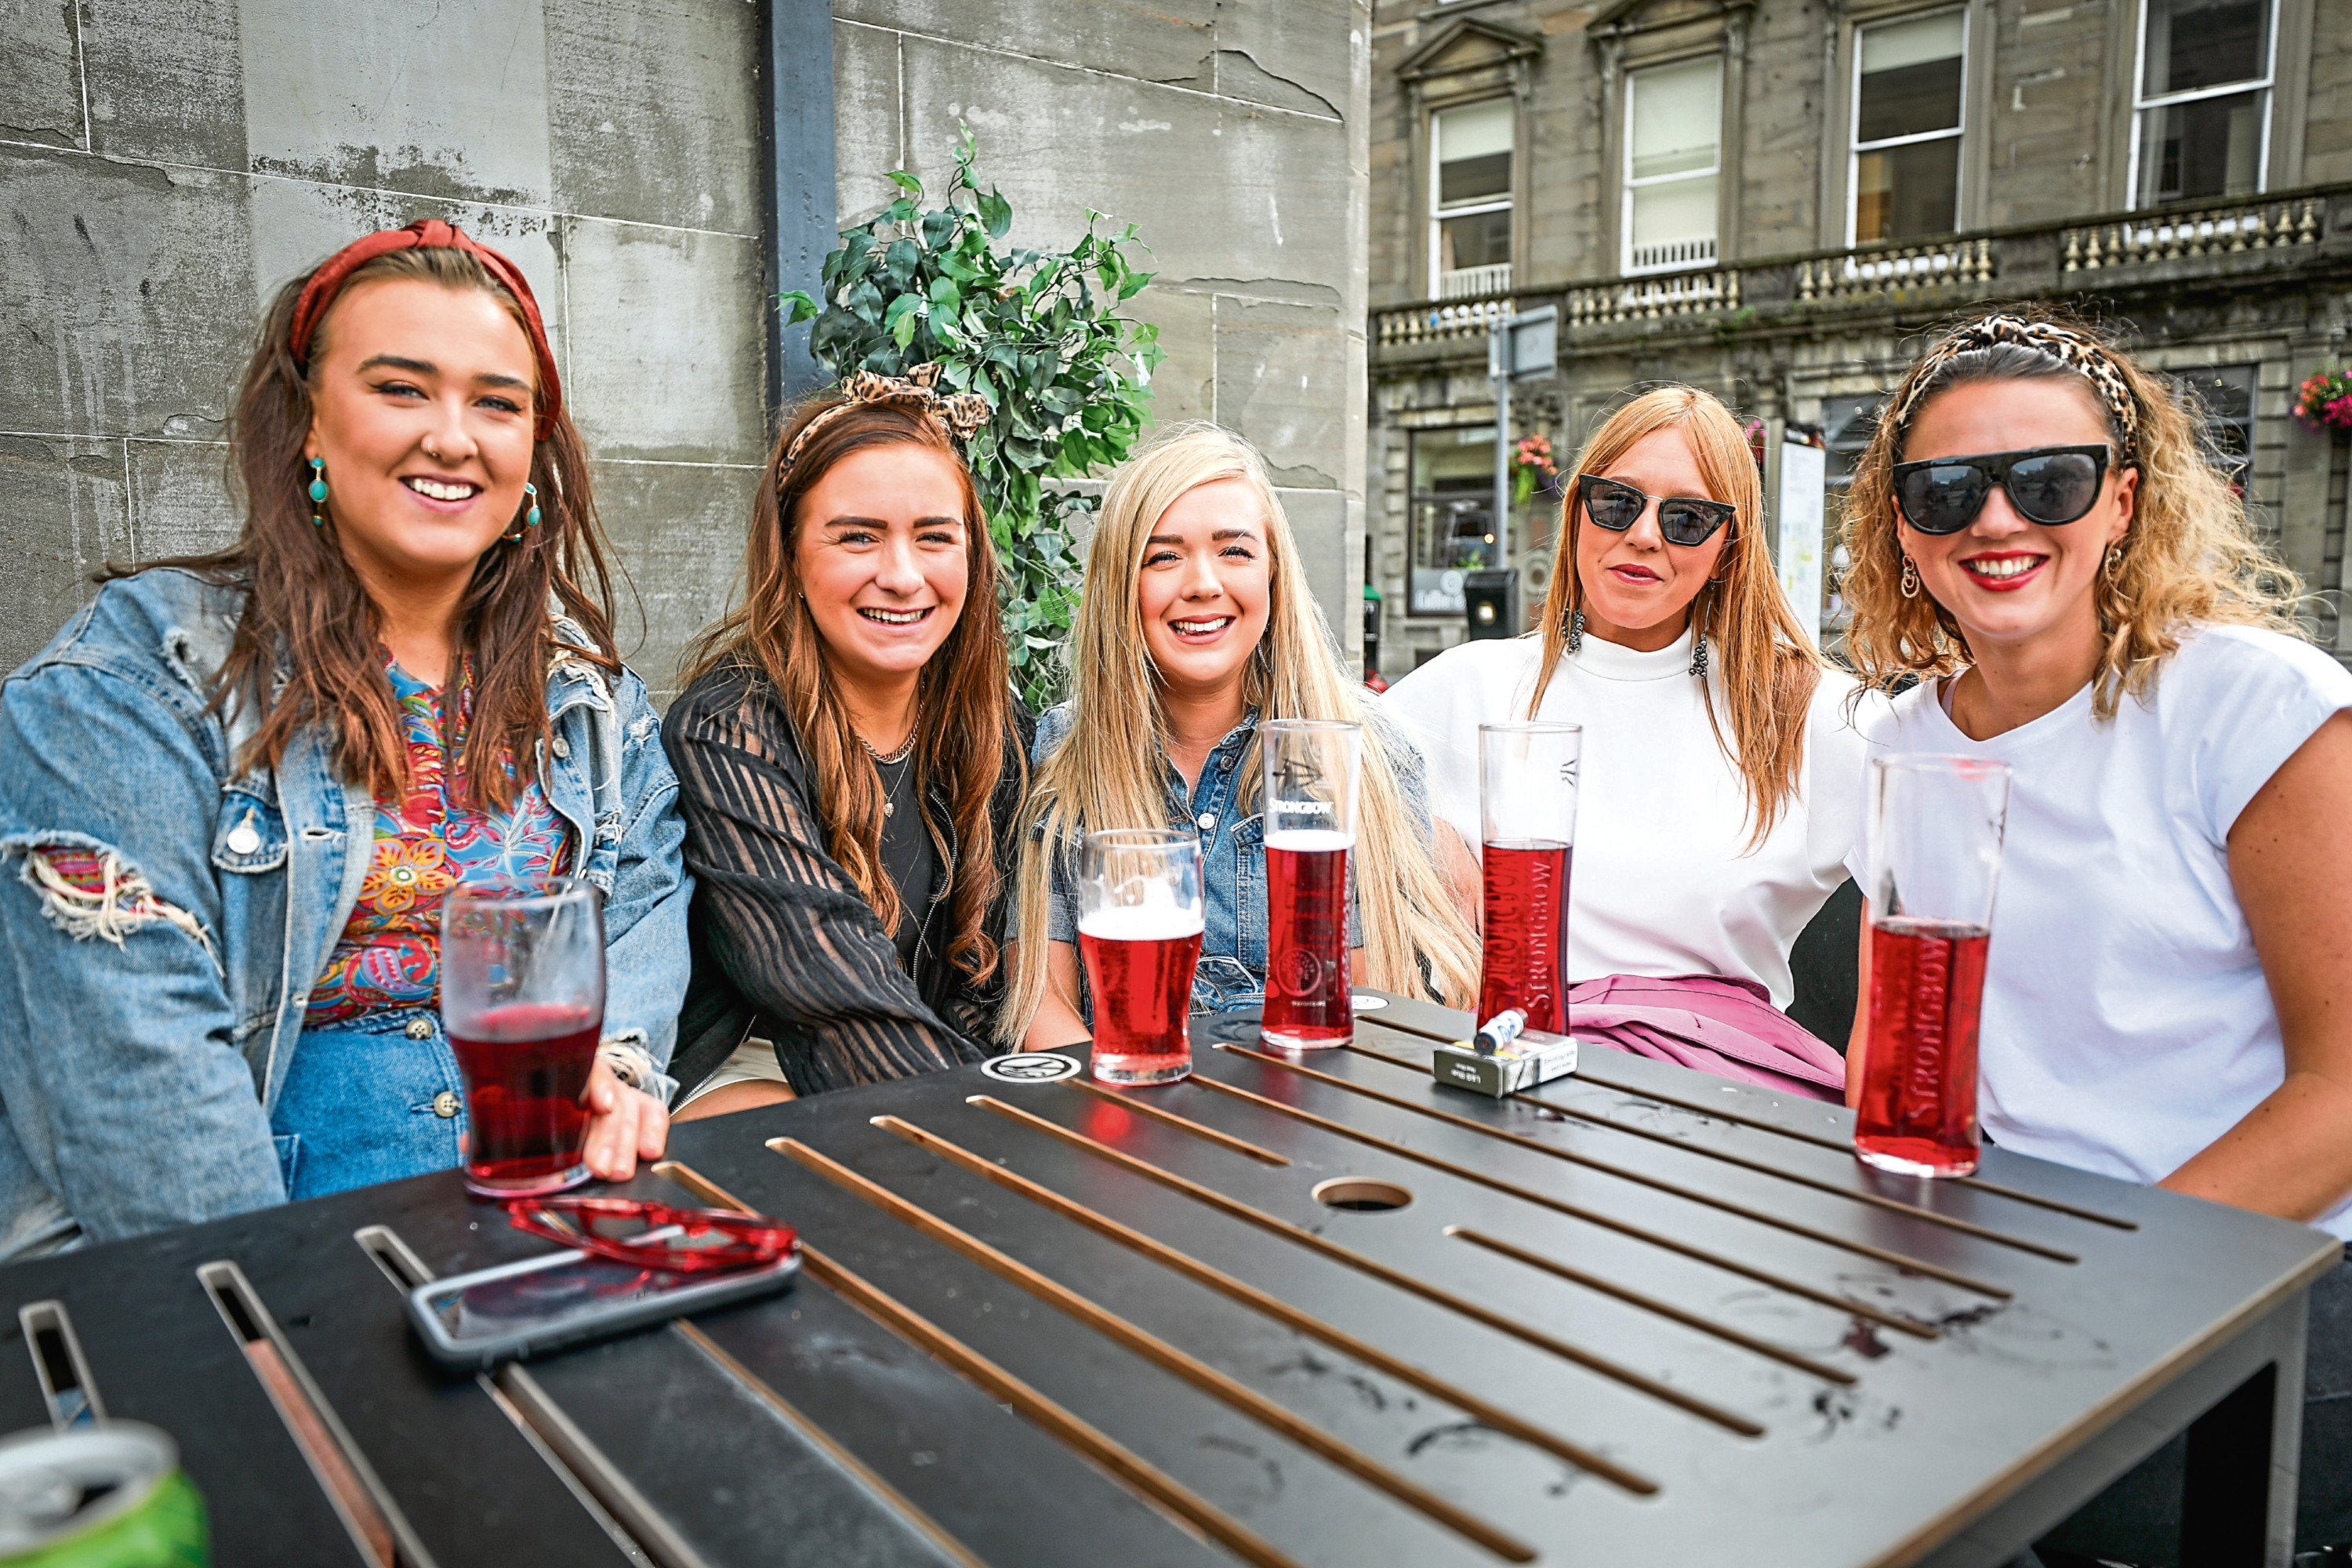 Clare Kane, Emma Storrier, Rae Glynn, Stacey Carlin and Kat Martin at the Counting House pub in Dundee.